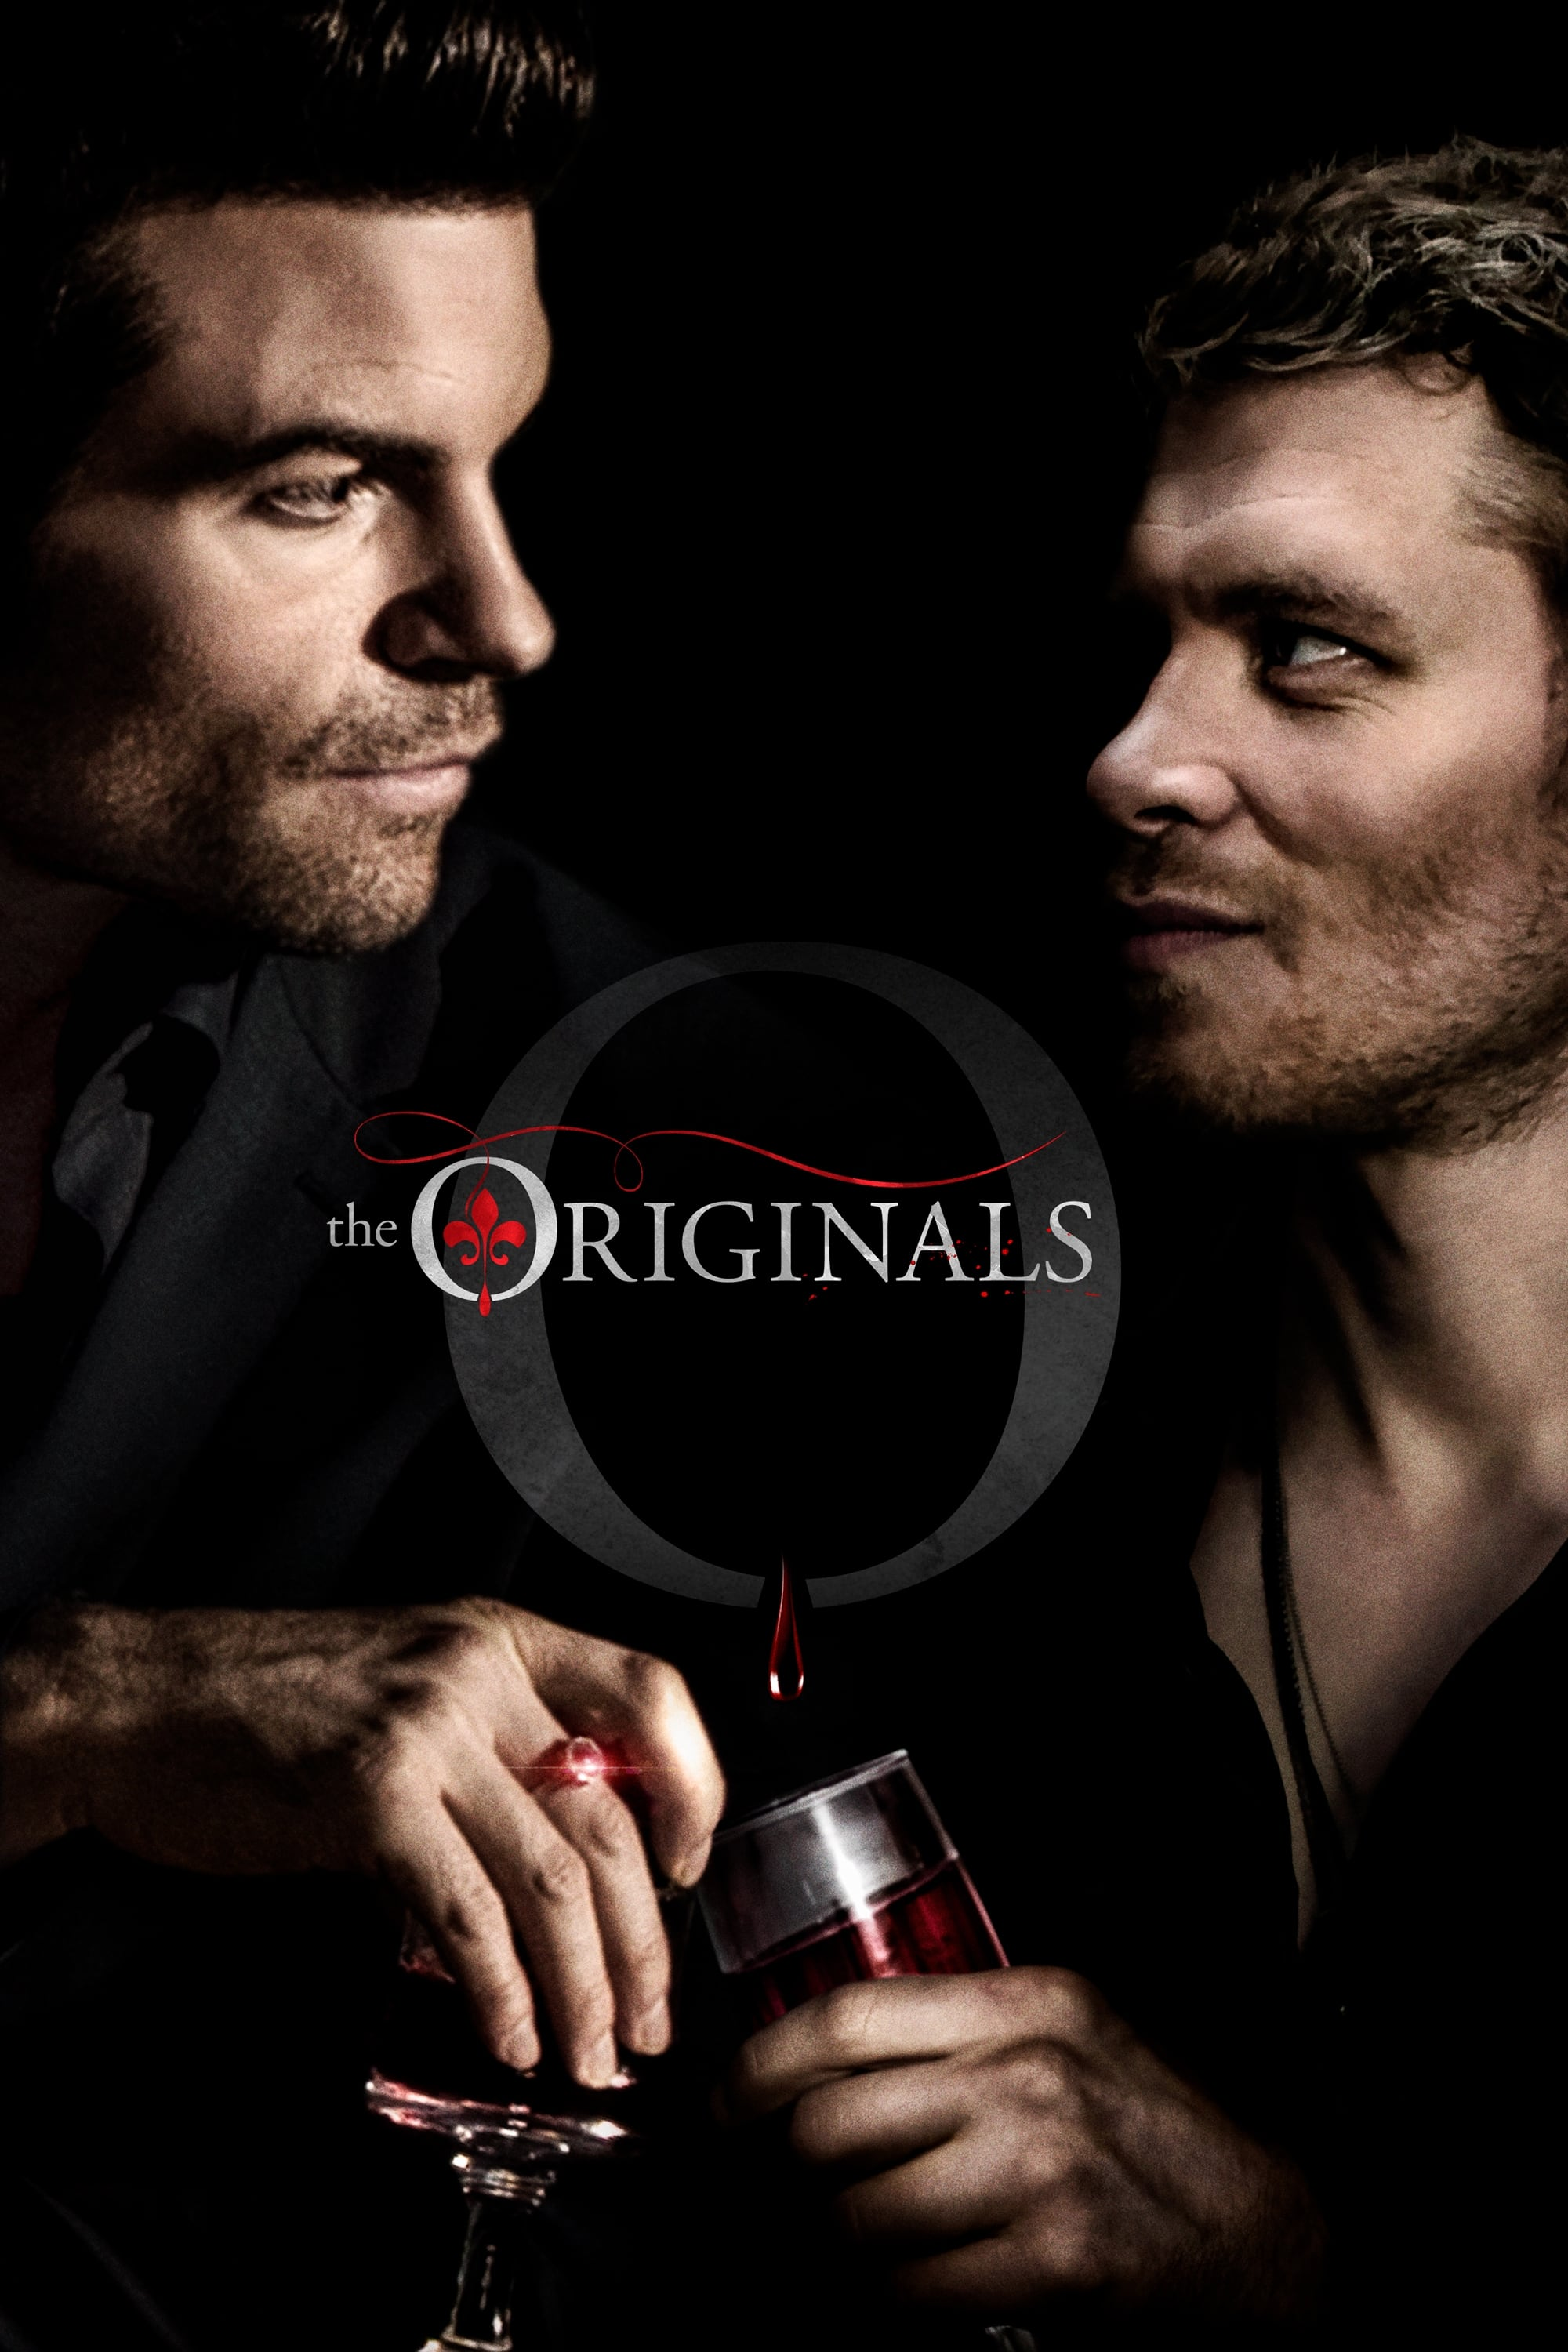 image for The Originals